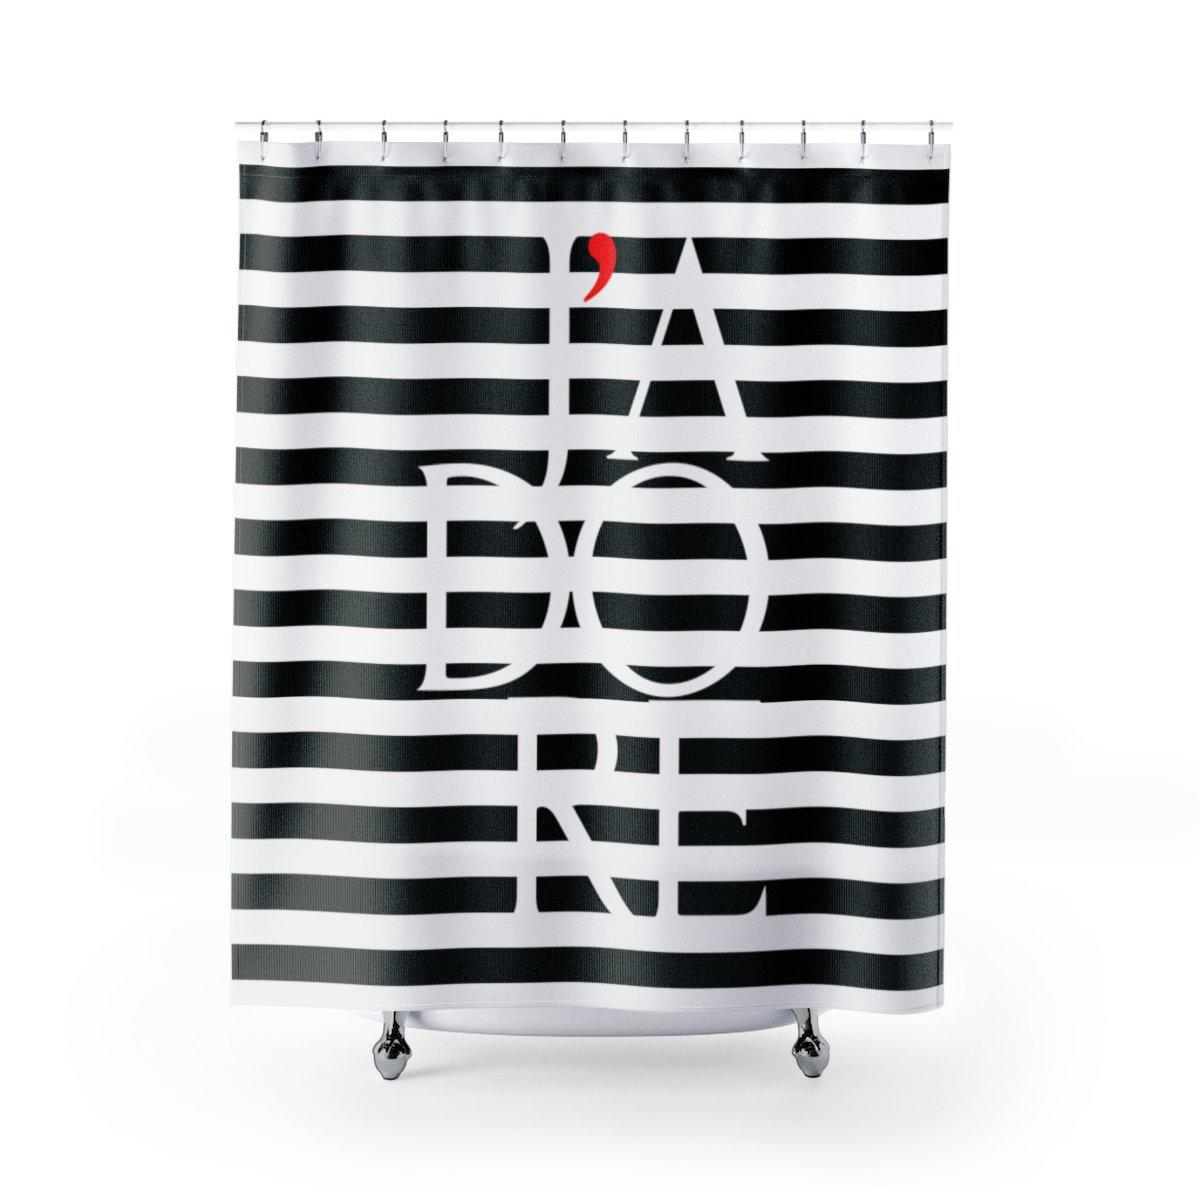 J'adore Shower Curtain-Bath - Bathroom Accessories - Shower Accessories - Shower Curtains-Maison d'Elite-71x74-Très Elite